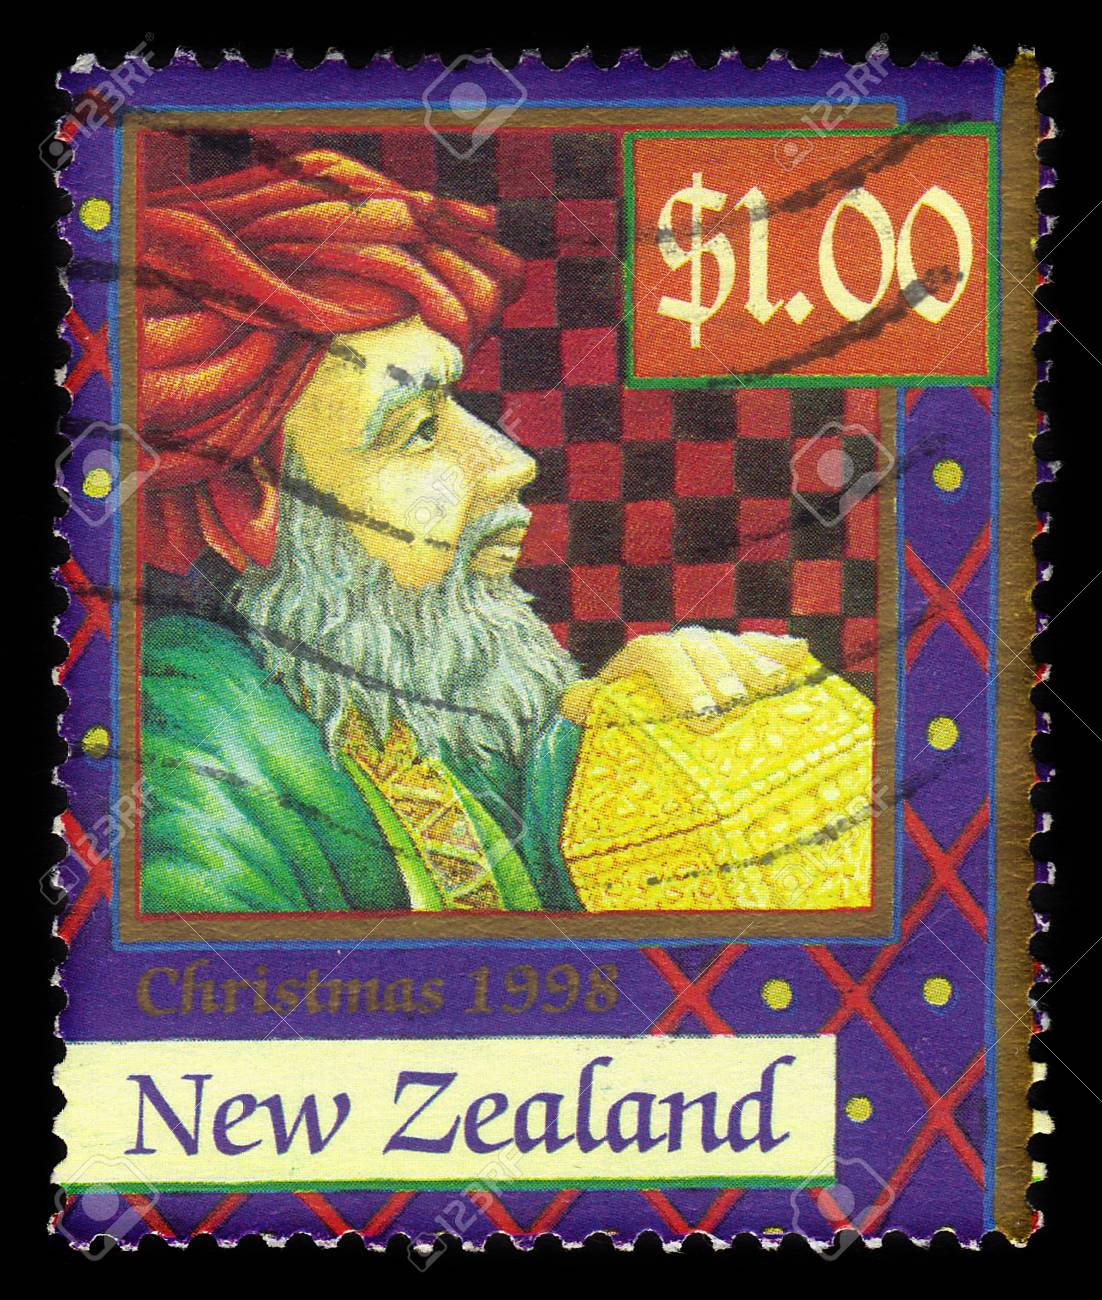 New Zealand - CIRCA 1998: A stamp printed in New Zealand shows